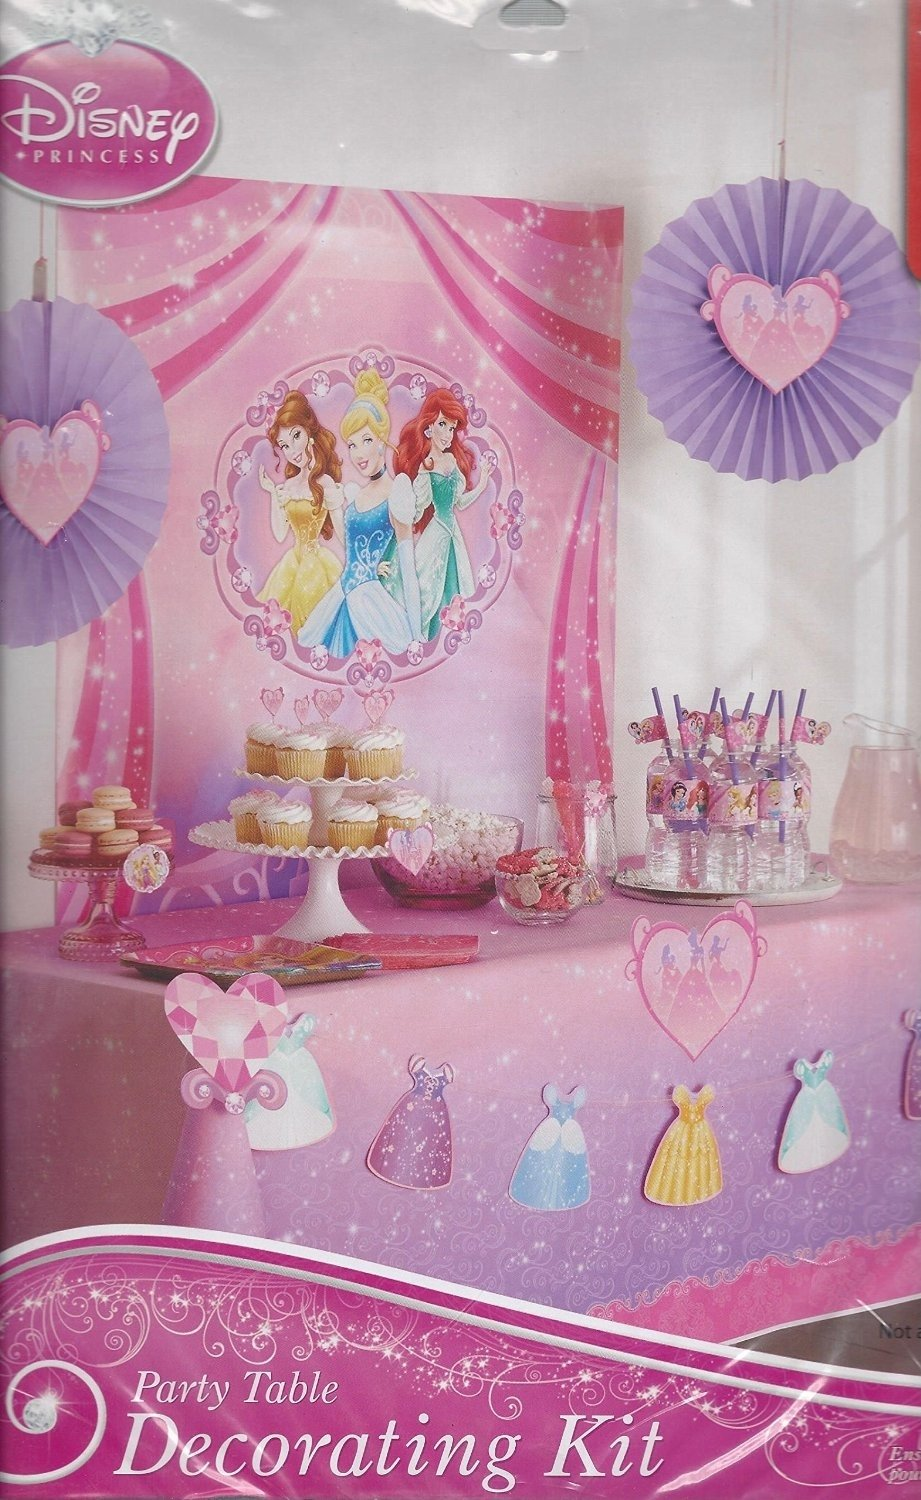 10 Beautiful Disney Princess Birthday Party Ideas amazonsmile disney princess party decorating kit toys games 2020